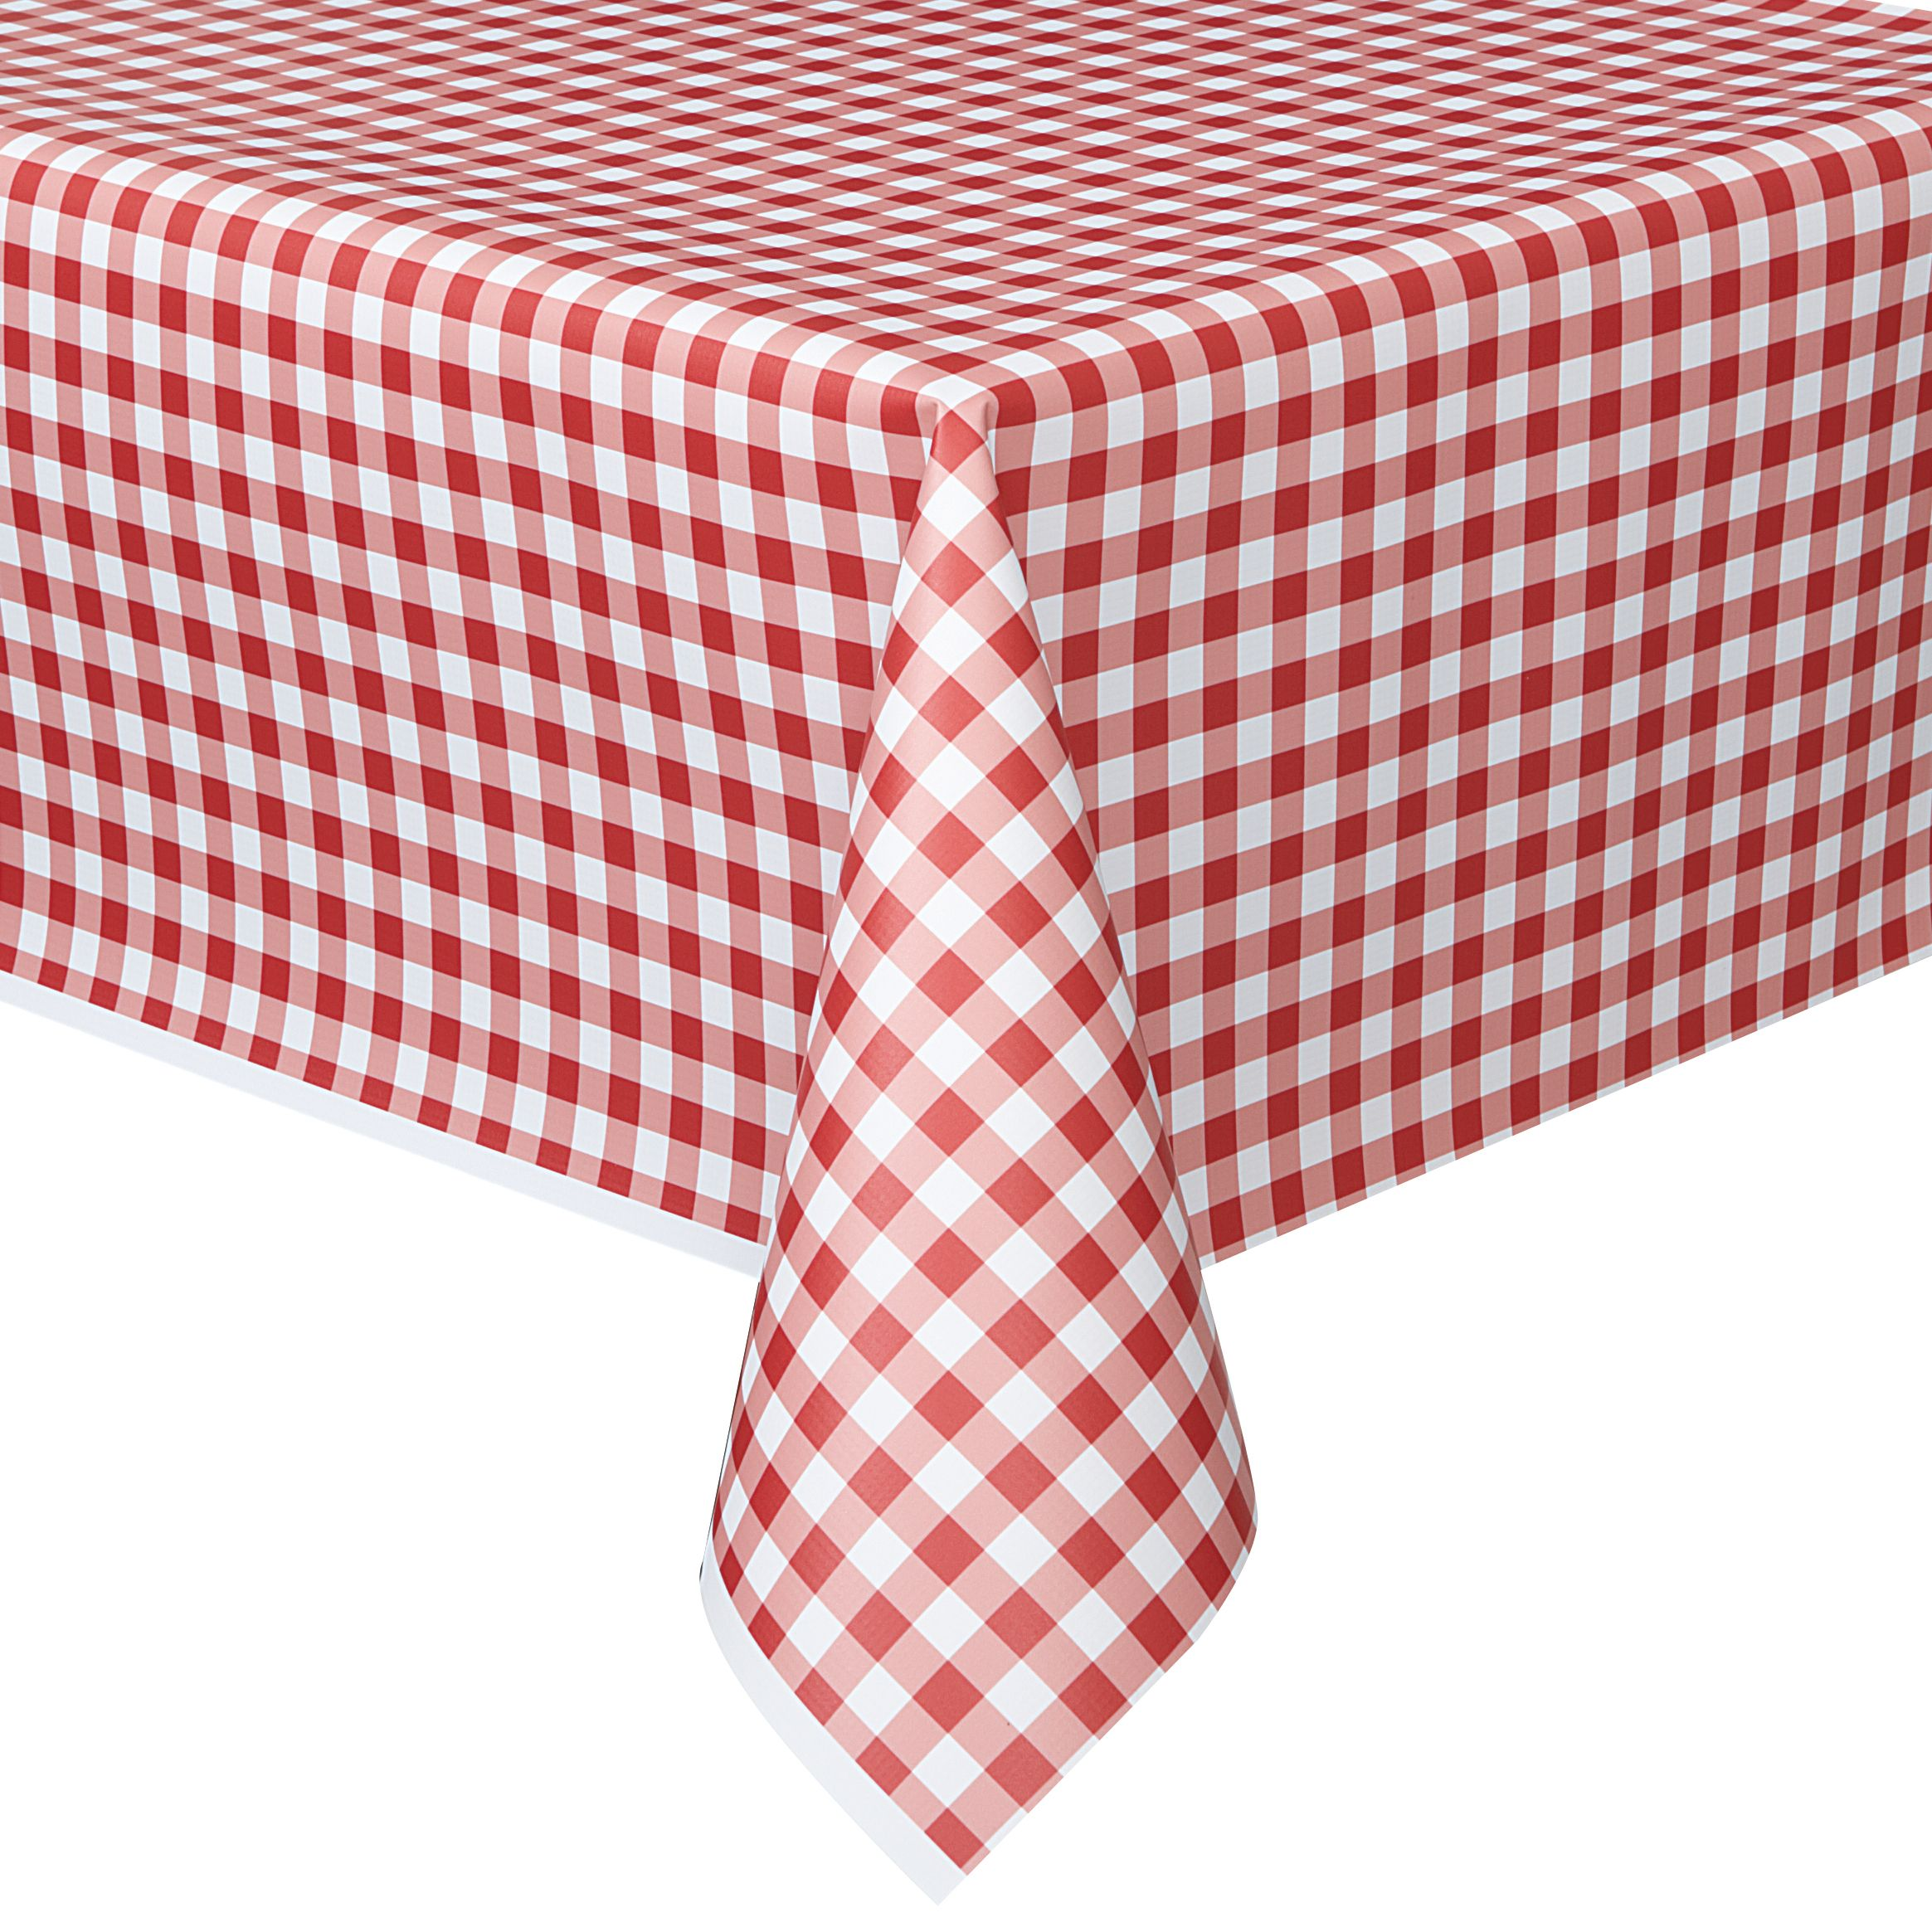 Plastic Red Gingham Table Cover 108 X 54 In 2020 Plastic Table Covers Gingham Party Bbq Party Decorations